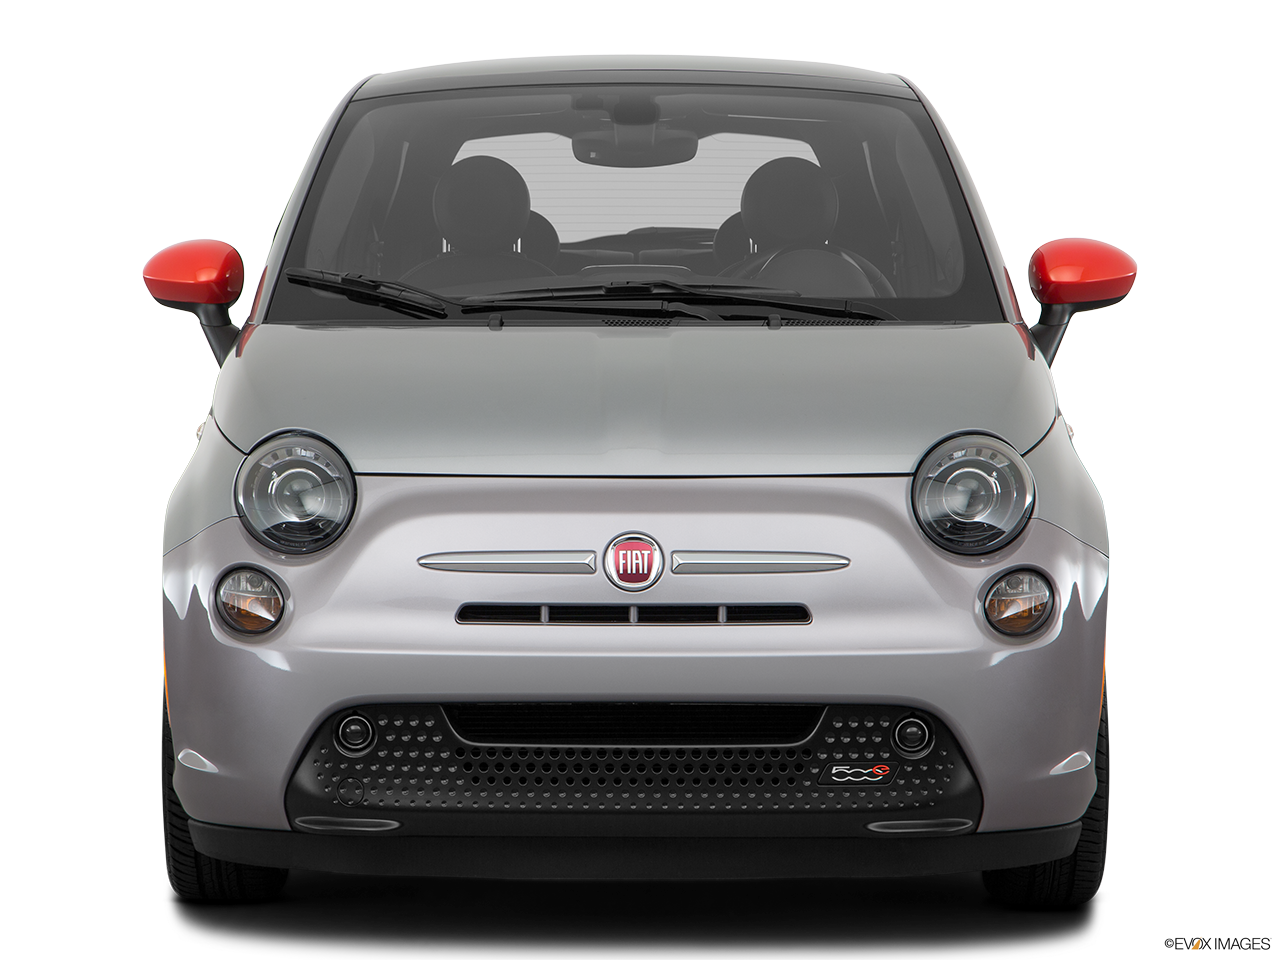 Front view of the Fiat 500e